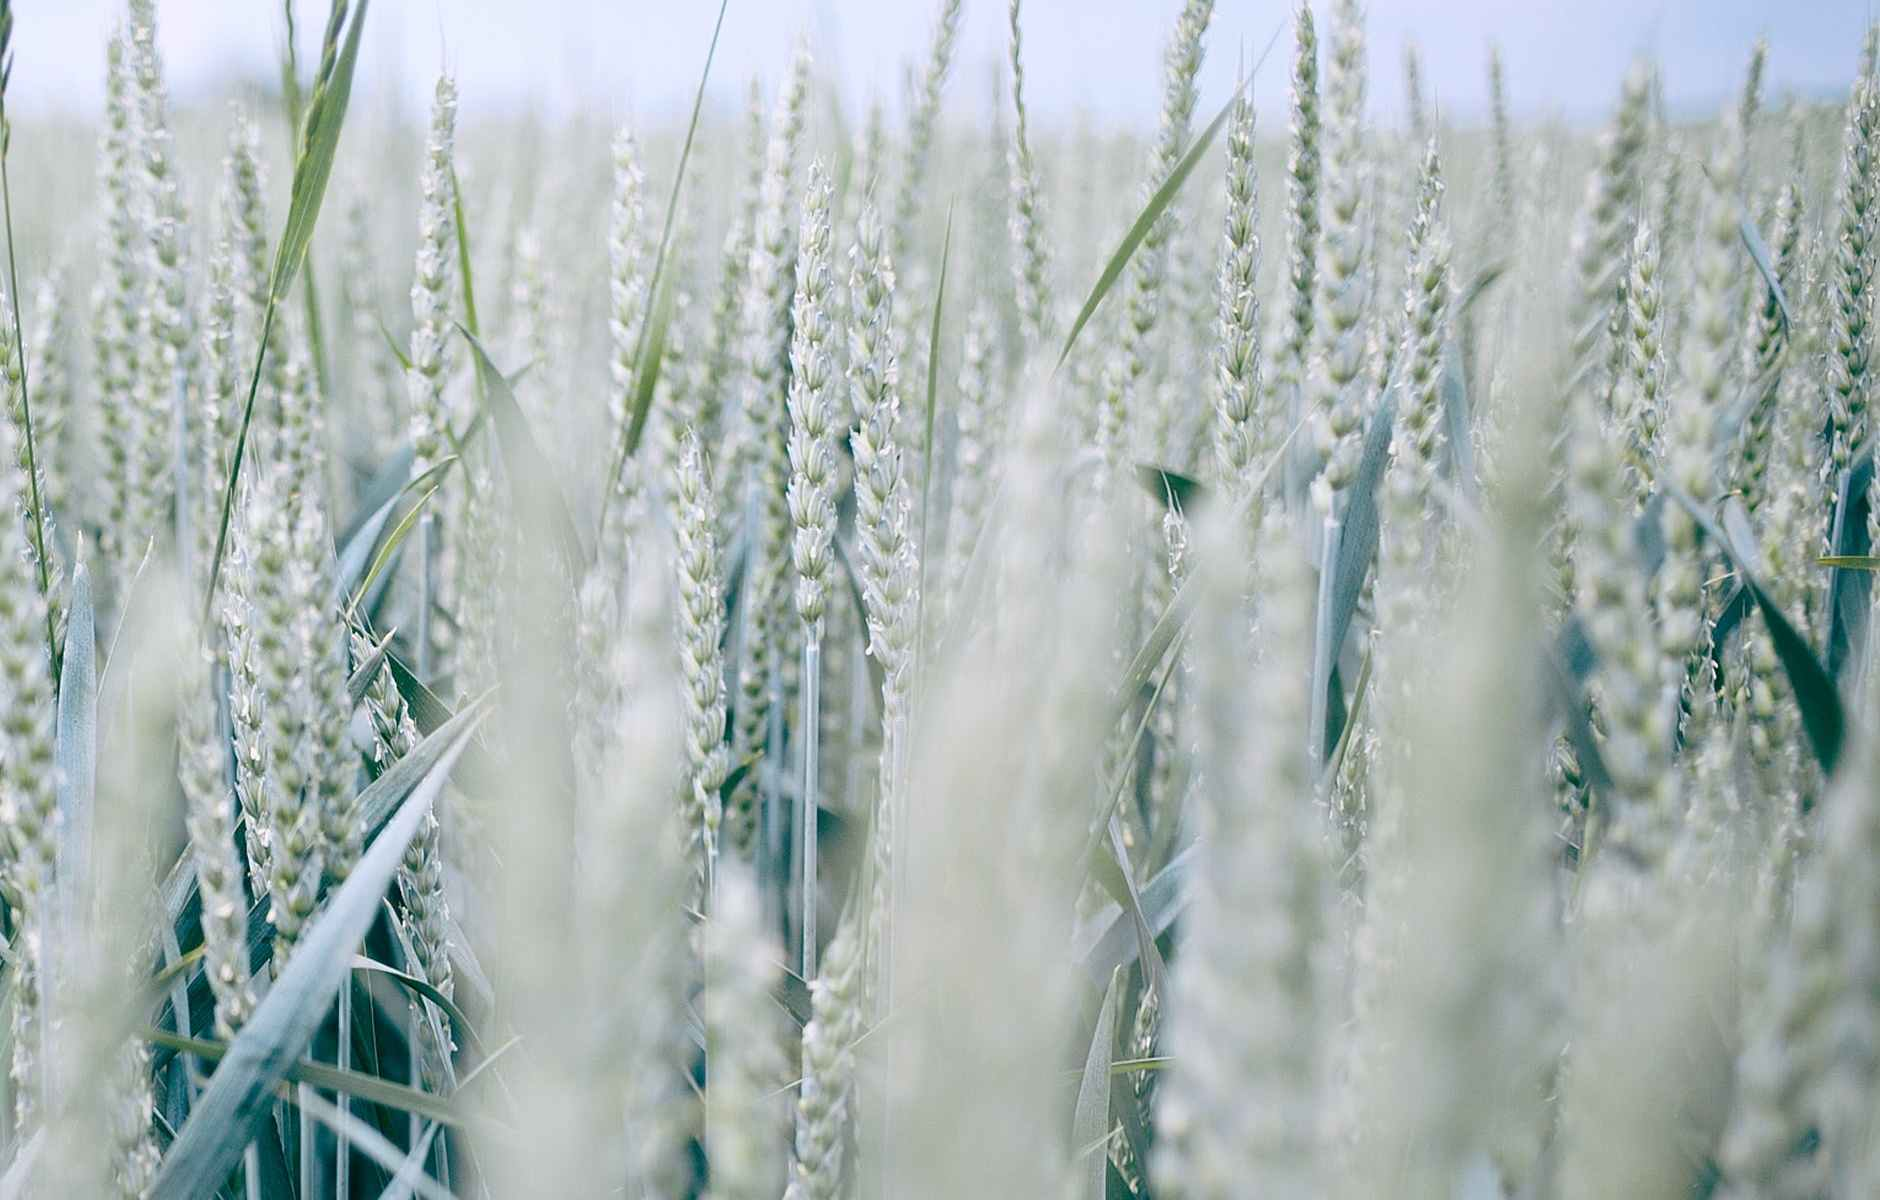 wheat spikes in countryside field in summer